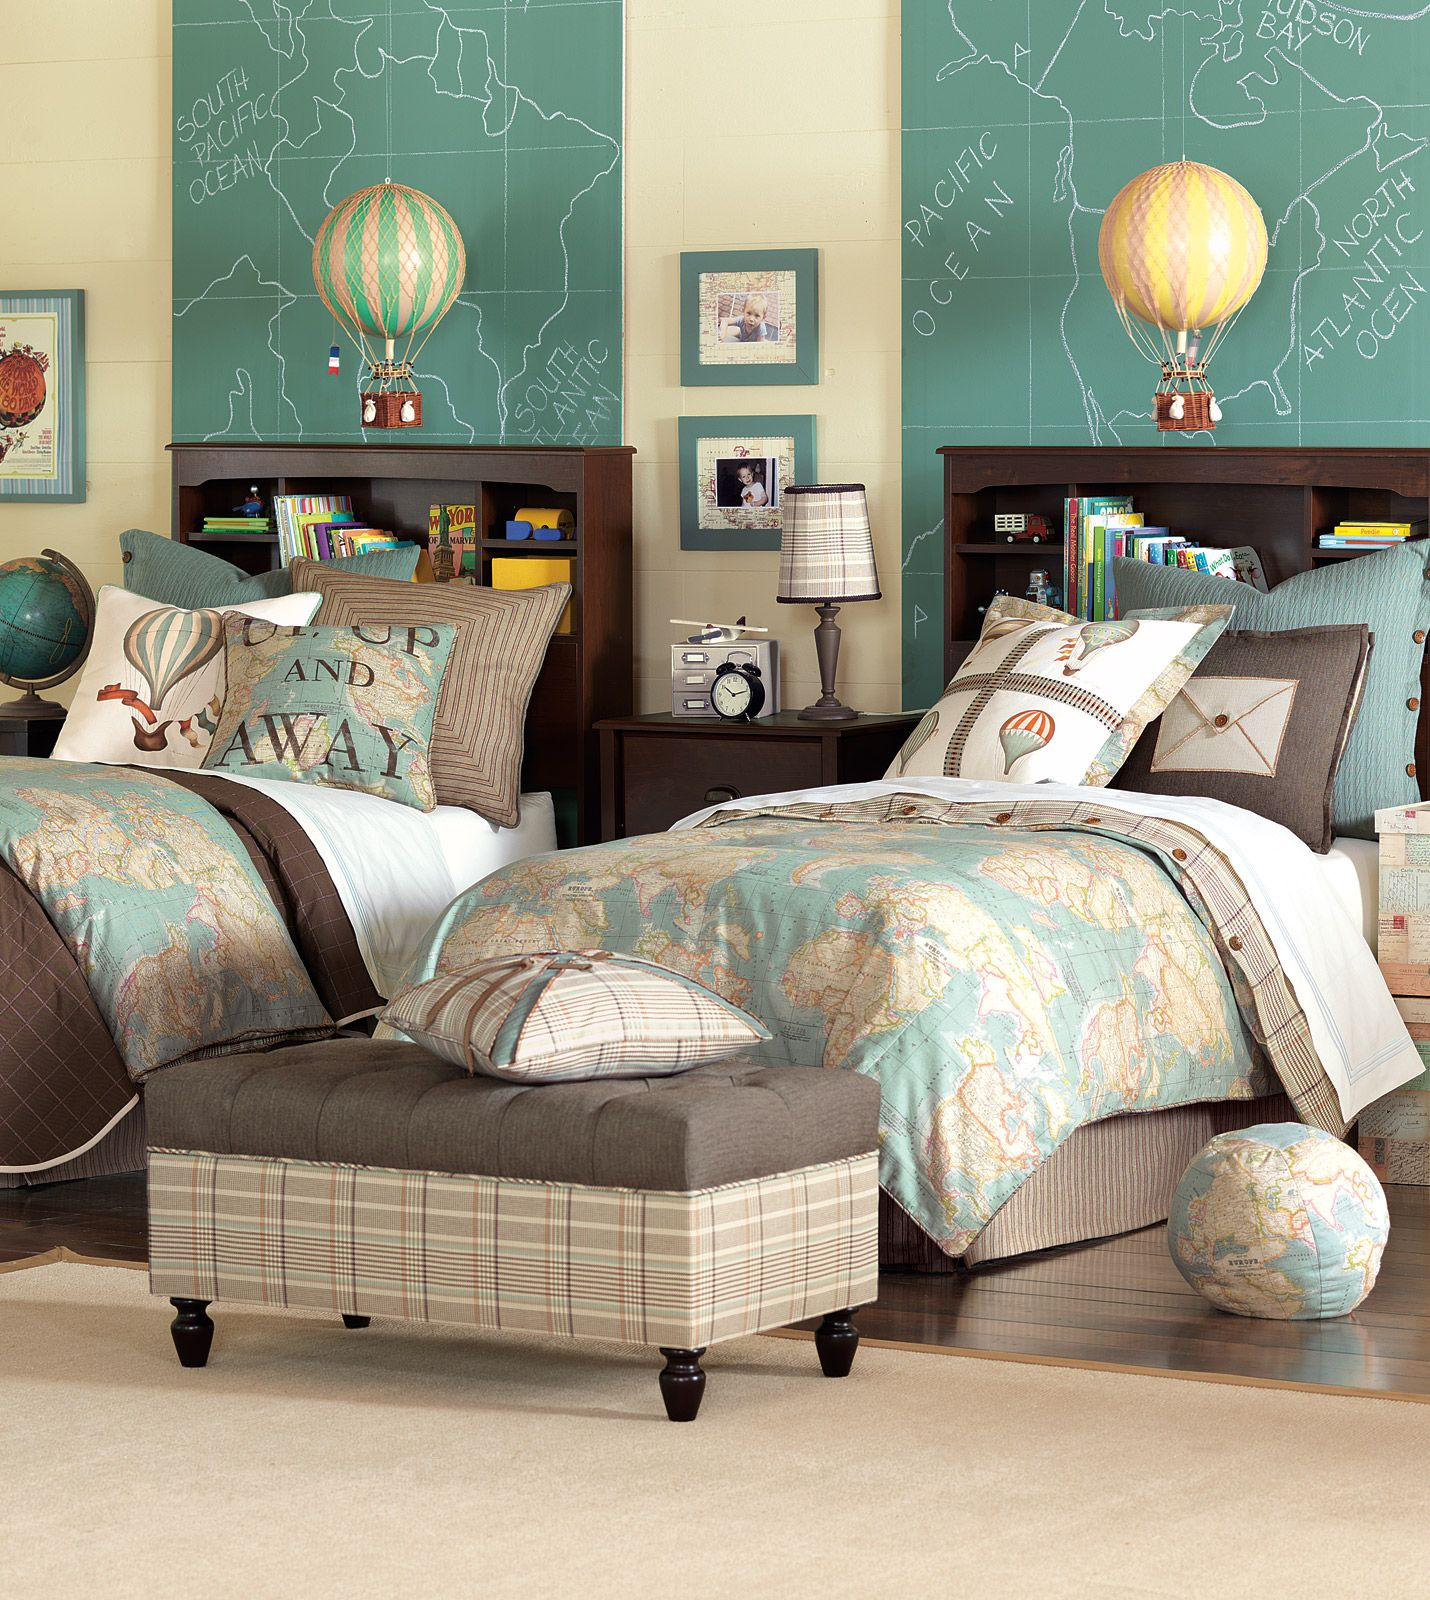 comforters client capabilities calico so bedding sarasota absolutely bespoke comforter for archives everything madcap our look to cottage them amazing has bed from custom skirts in tag